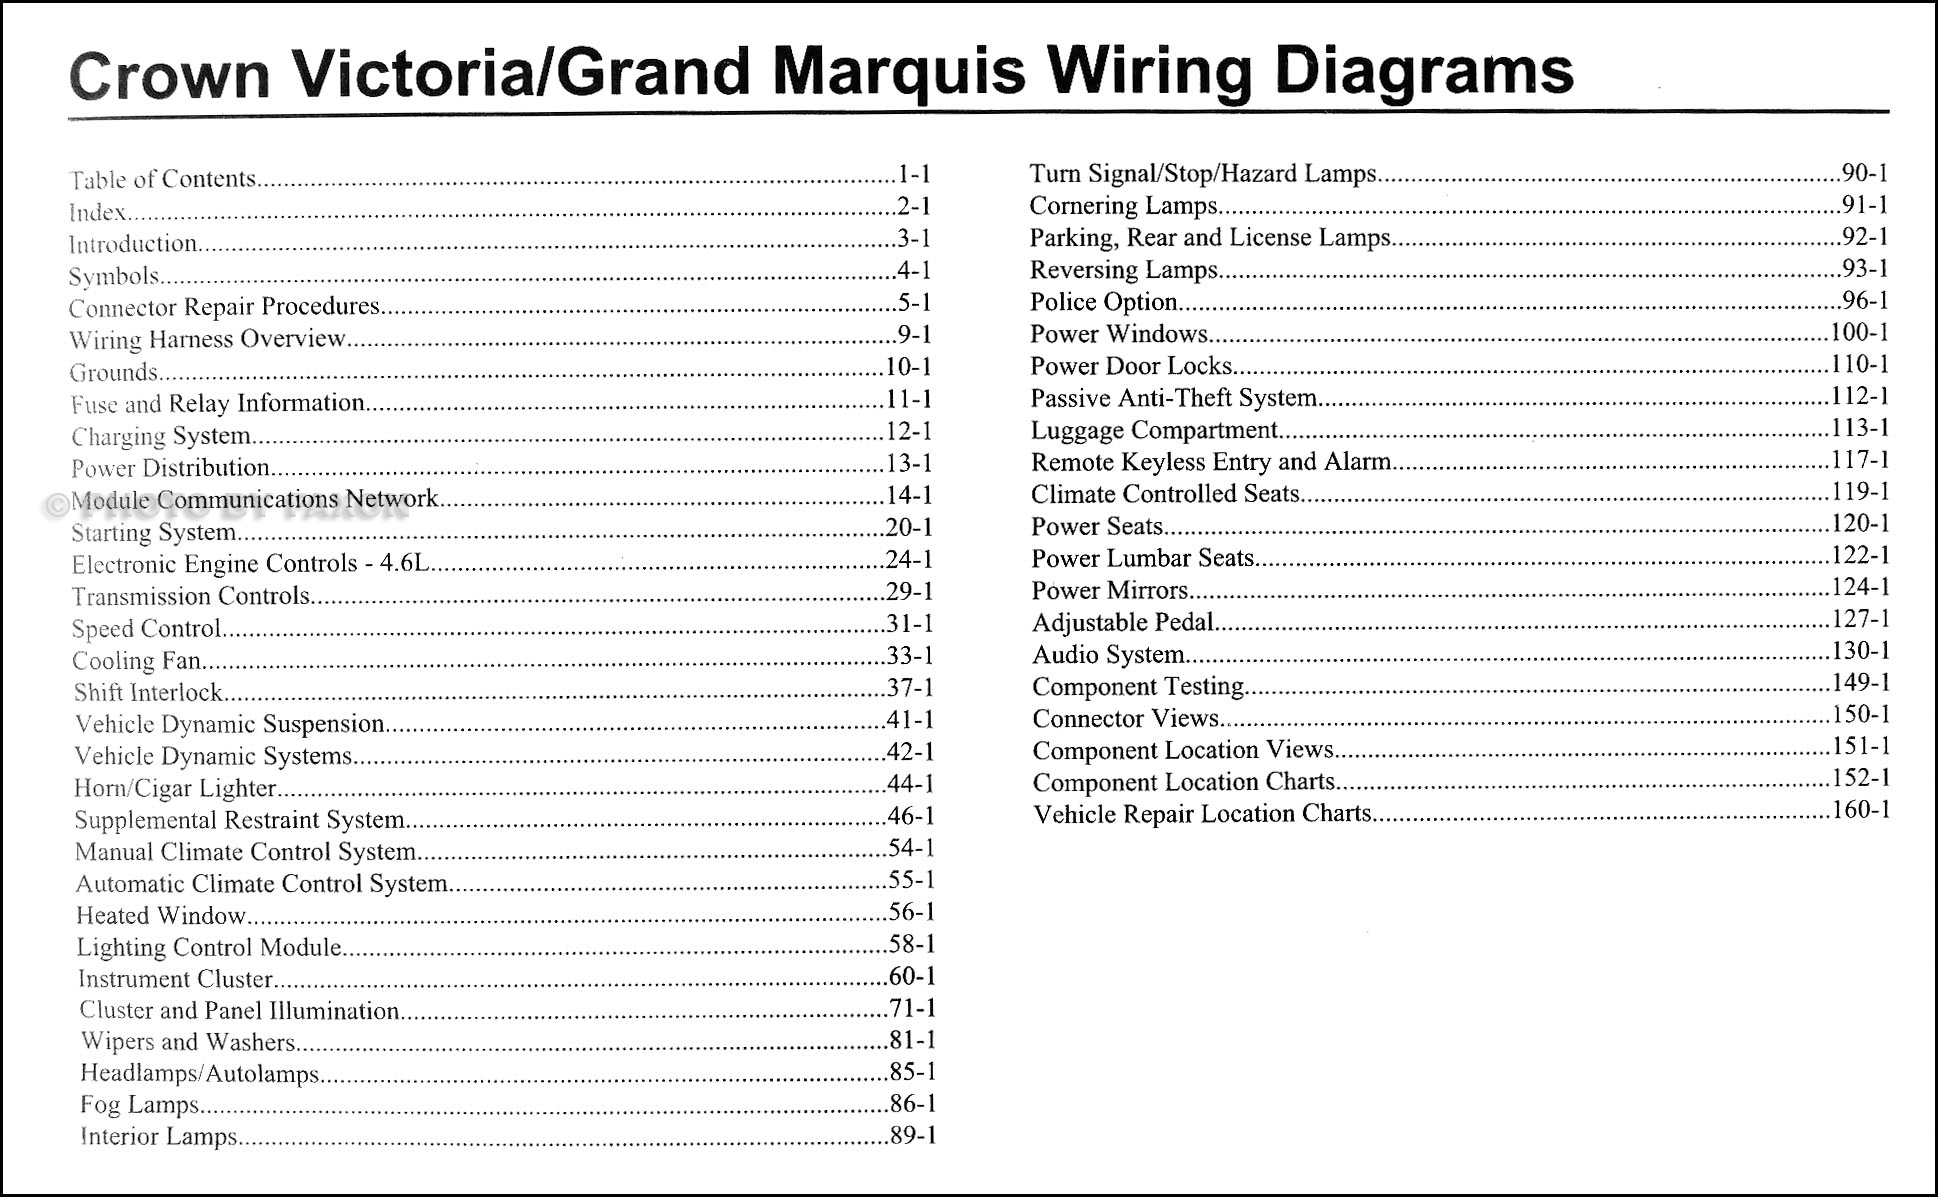 2009FordCrownVictoriaOWD TOC 2009 crown victoria & grand marquis original wiring diagram manual 1994 mercury grand marquis fuse box diagram at eliteediting.co